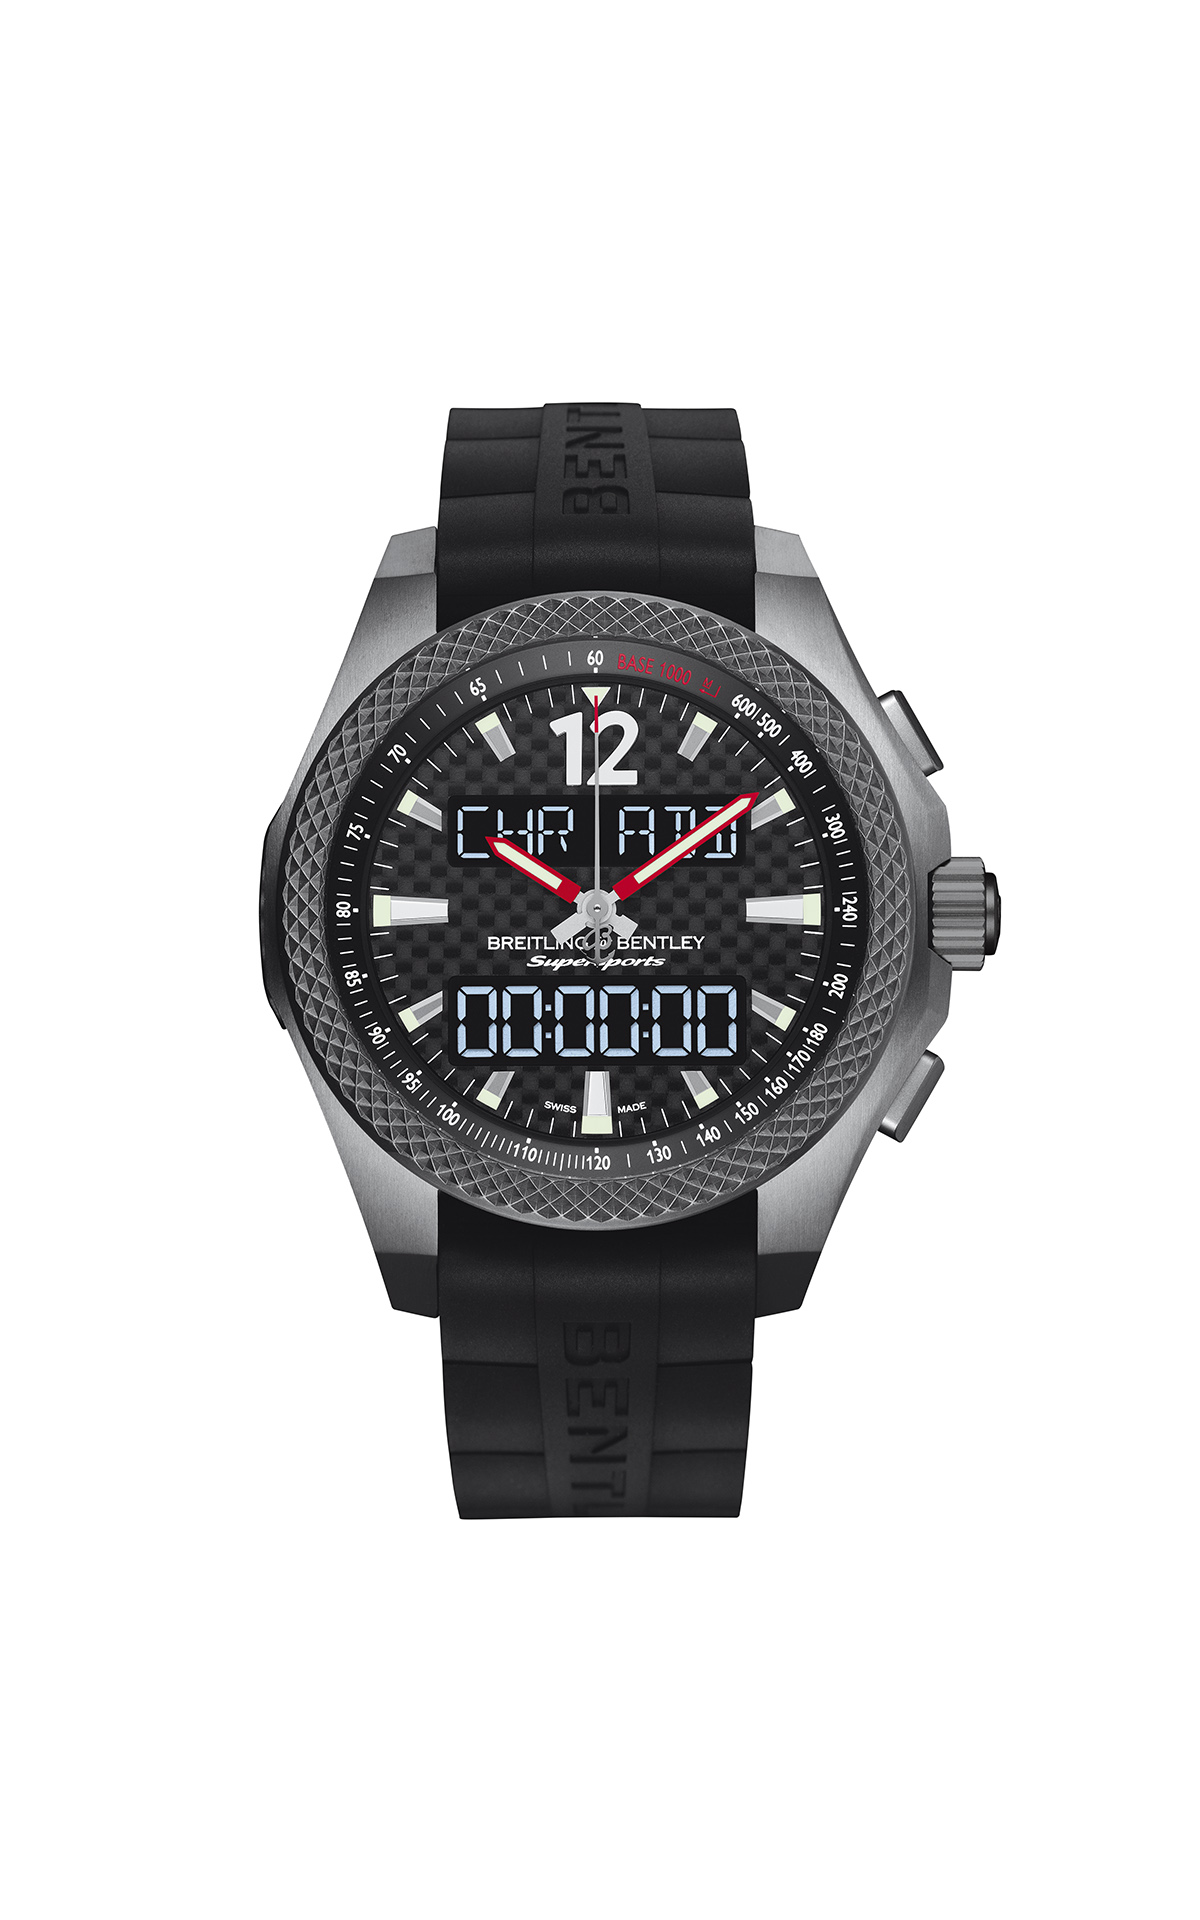 Reloj Bentley carbono Breitling